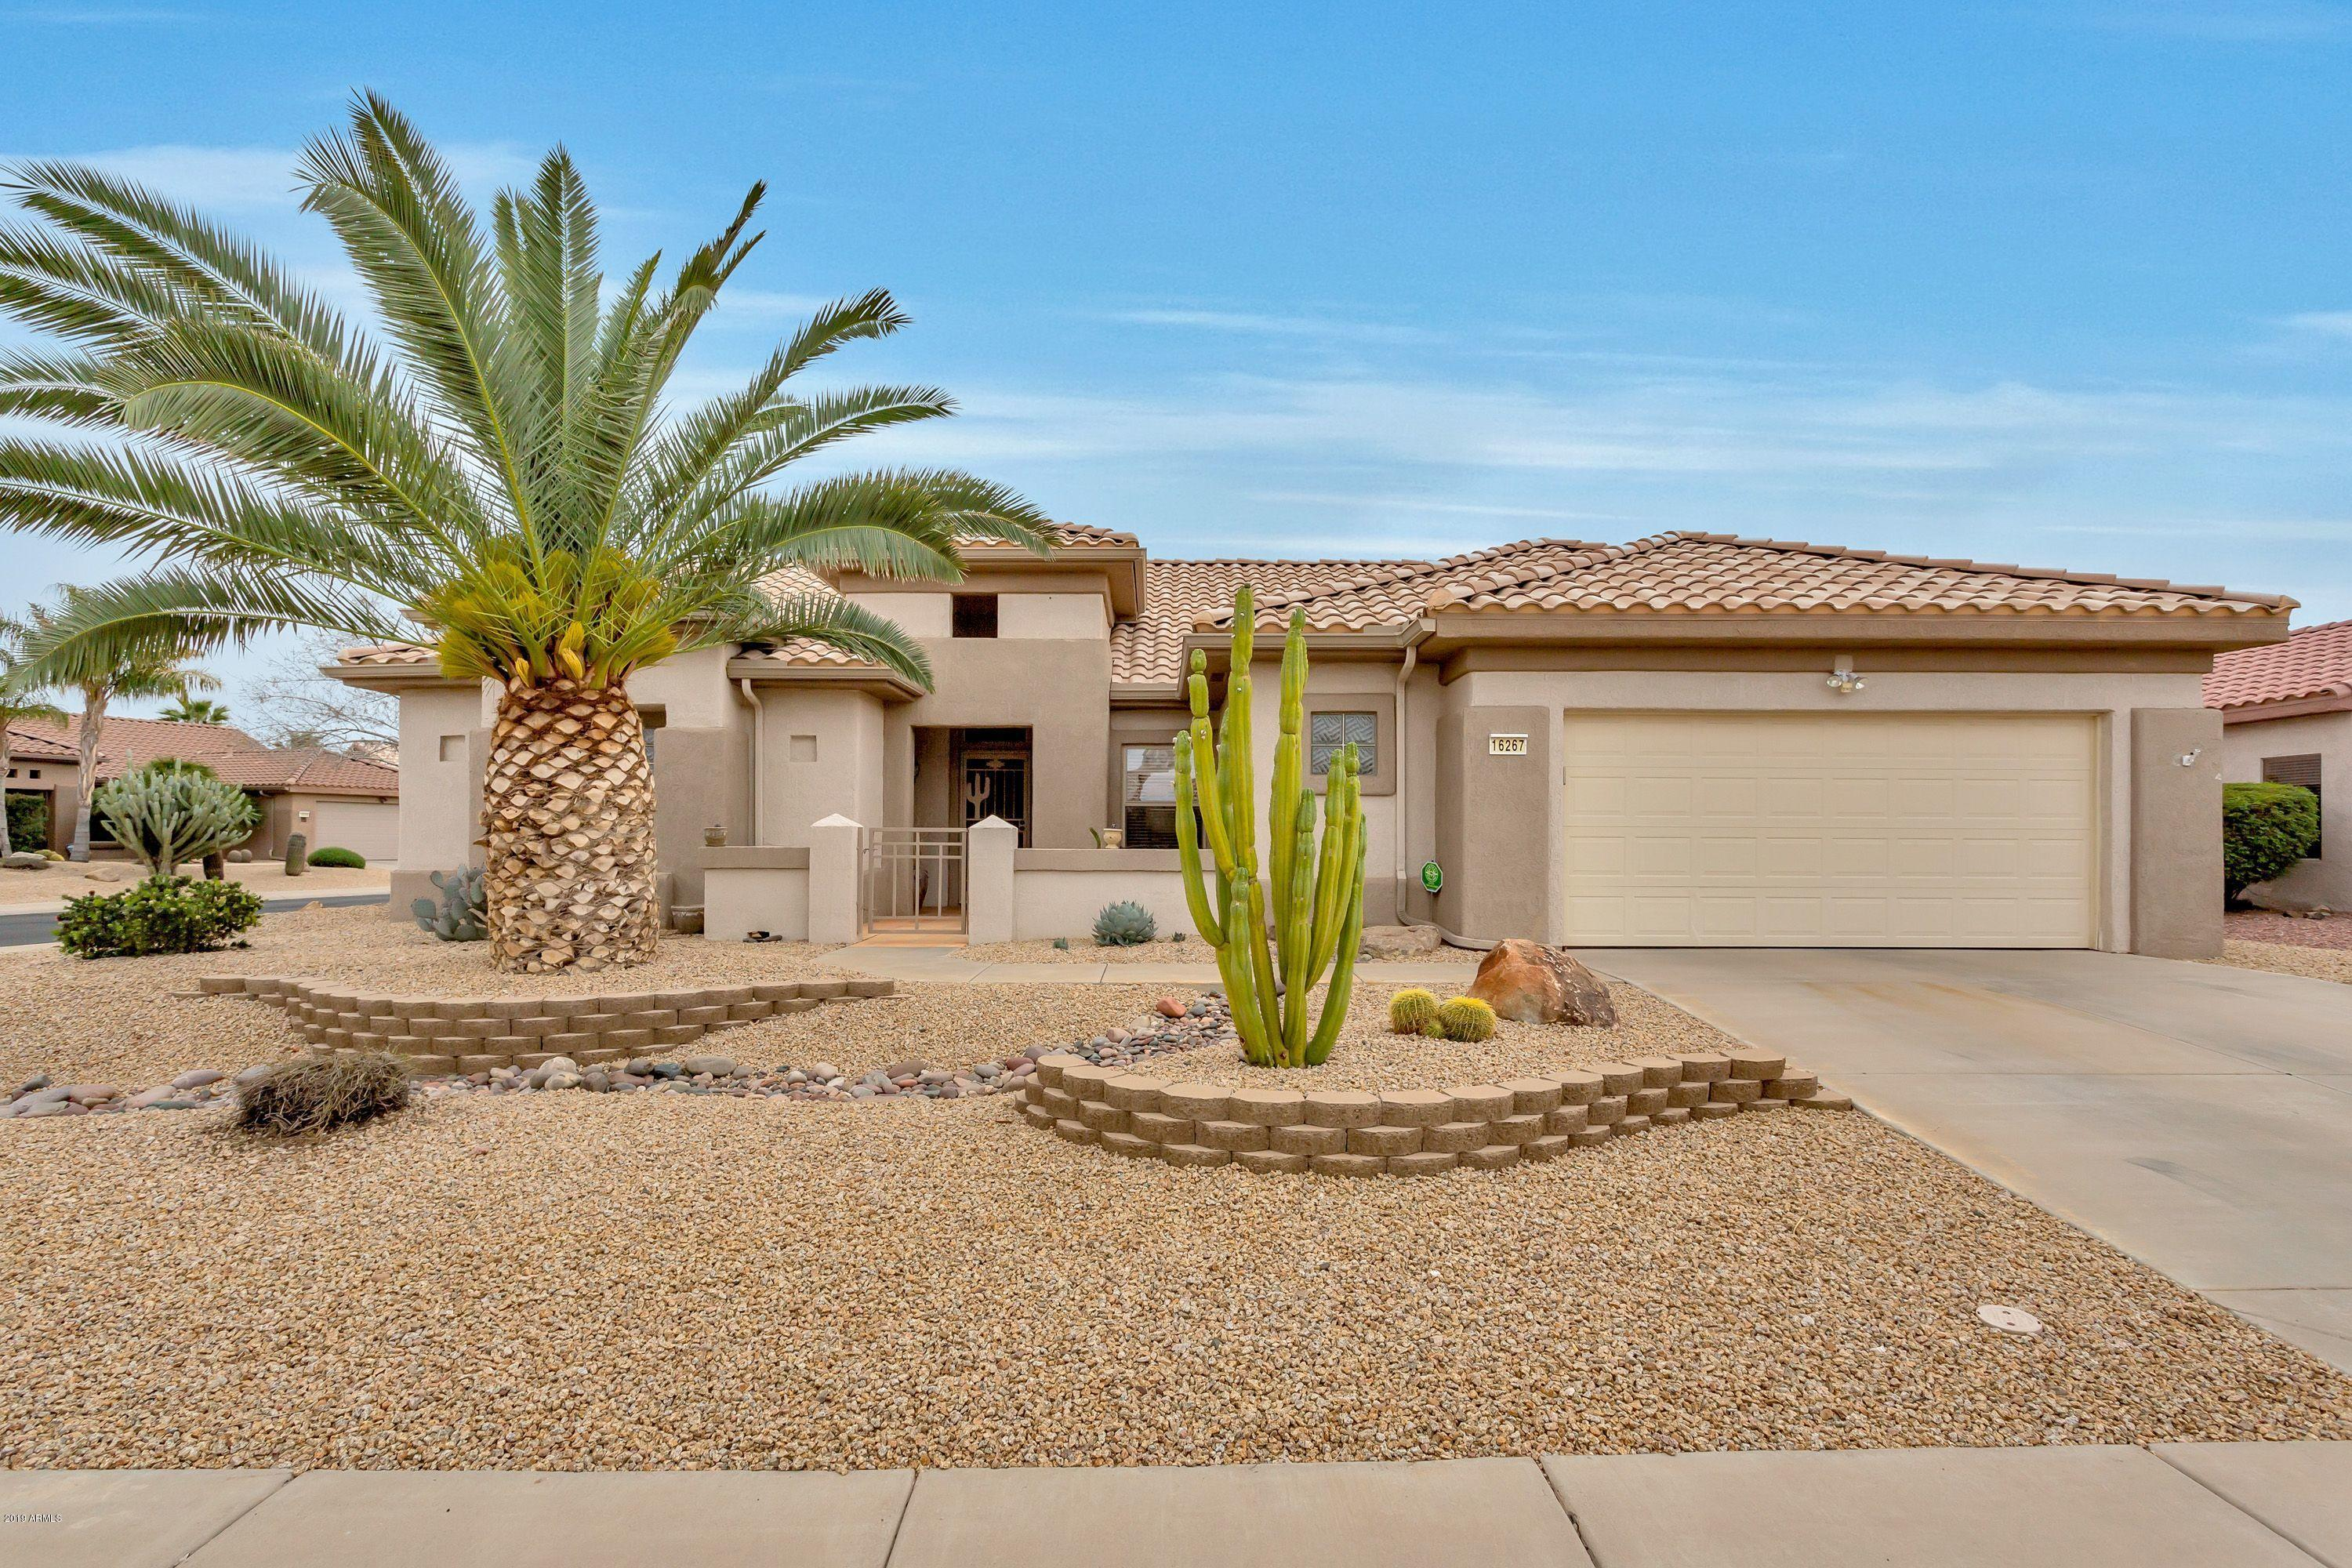 16267 W LAGO VERDE Way, Surprise, Arizona